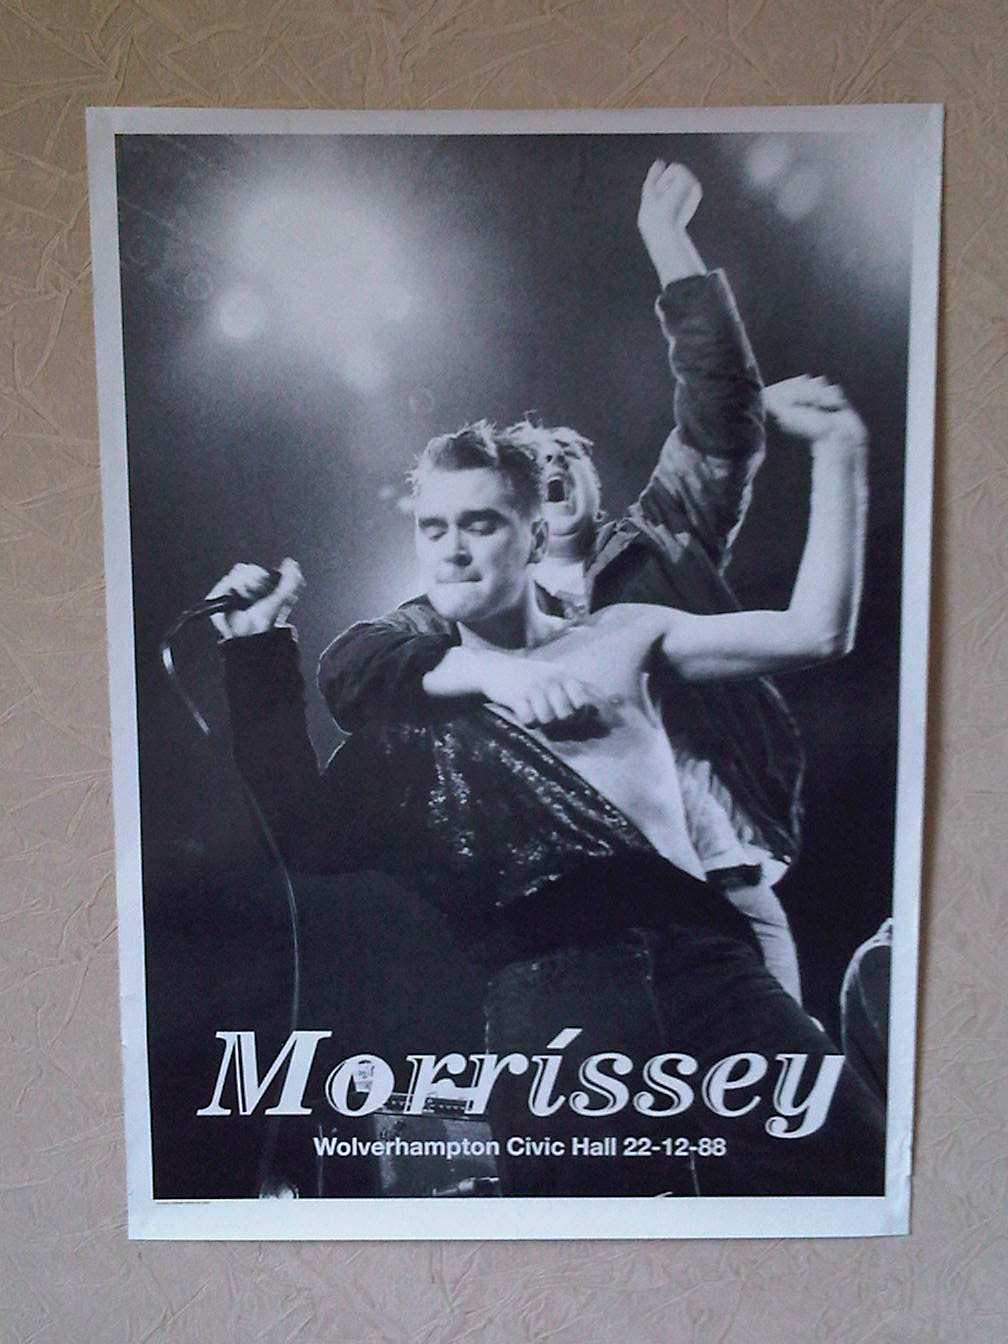 http://c.morrissey-solo.com/gallery/files/1/9/3/5/4/048.jpg